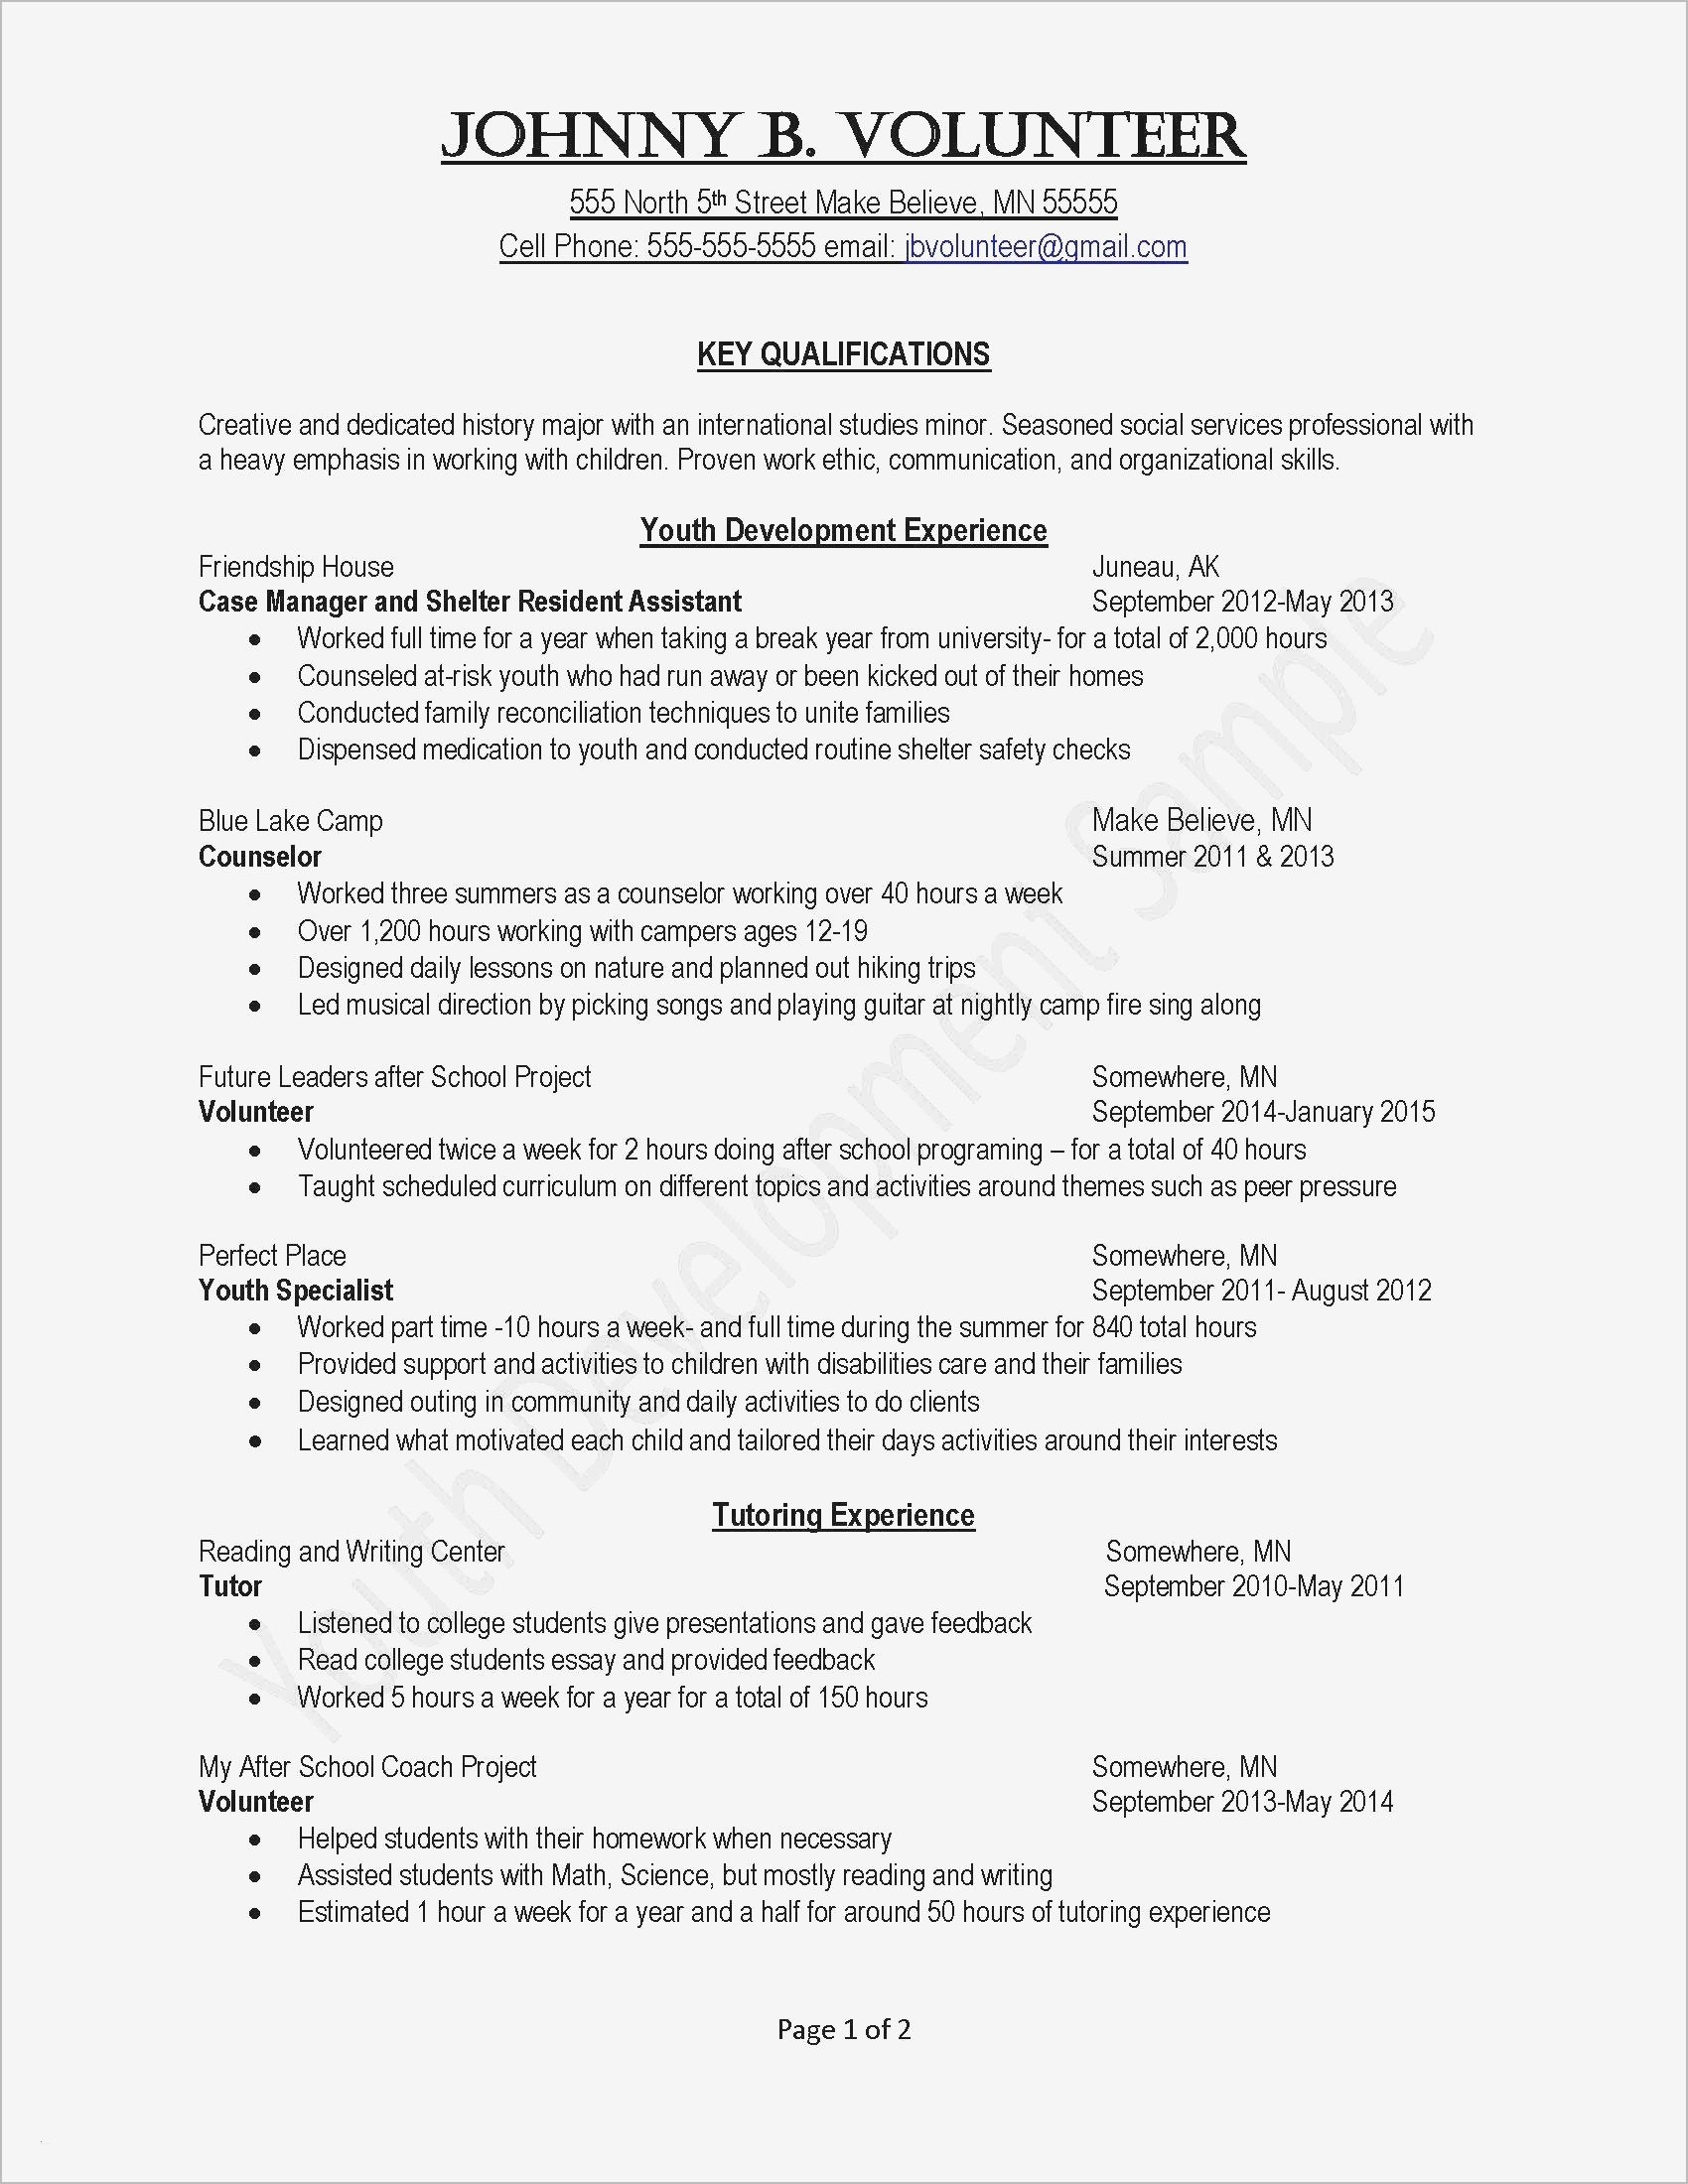 Generic Cover Letter Template - General Maintenance Resume New Job Fer Letter Template Us Copy Od